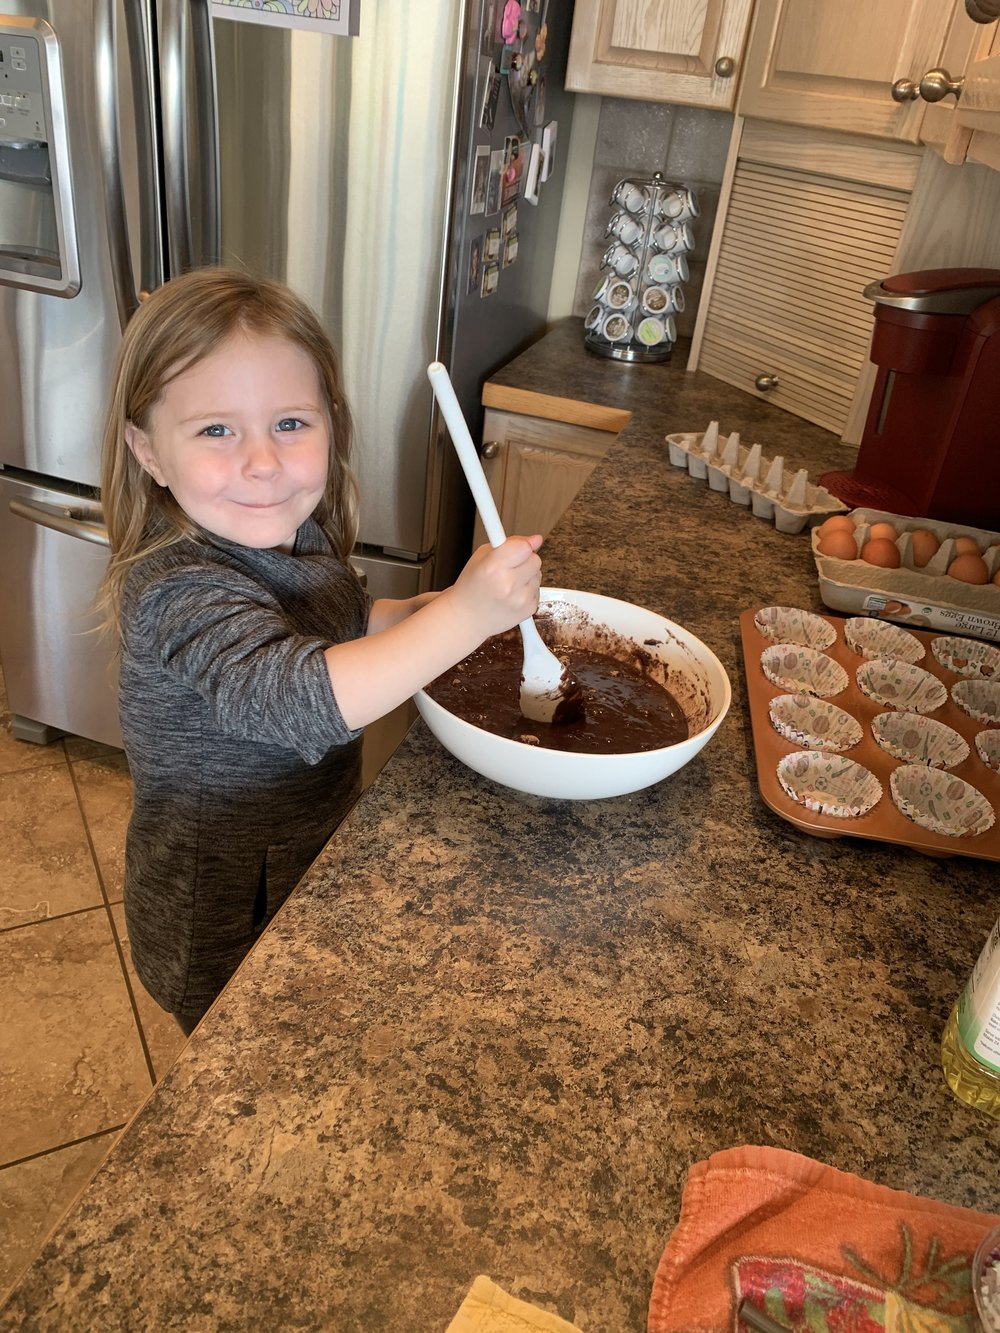 Mmmm she made the best brownie cupcakes. Only problem with this is grandma had 12 in one day. Yikes! Sugar coma.